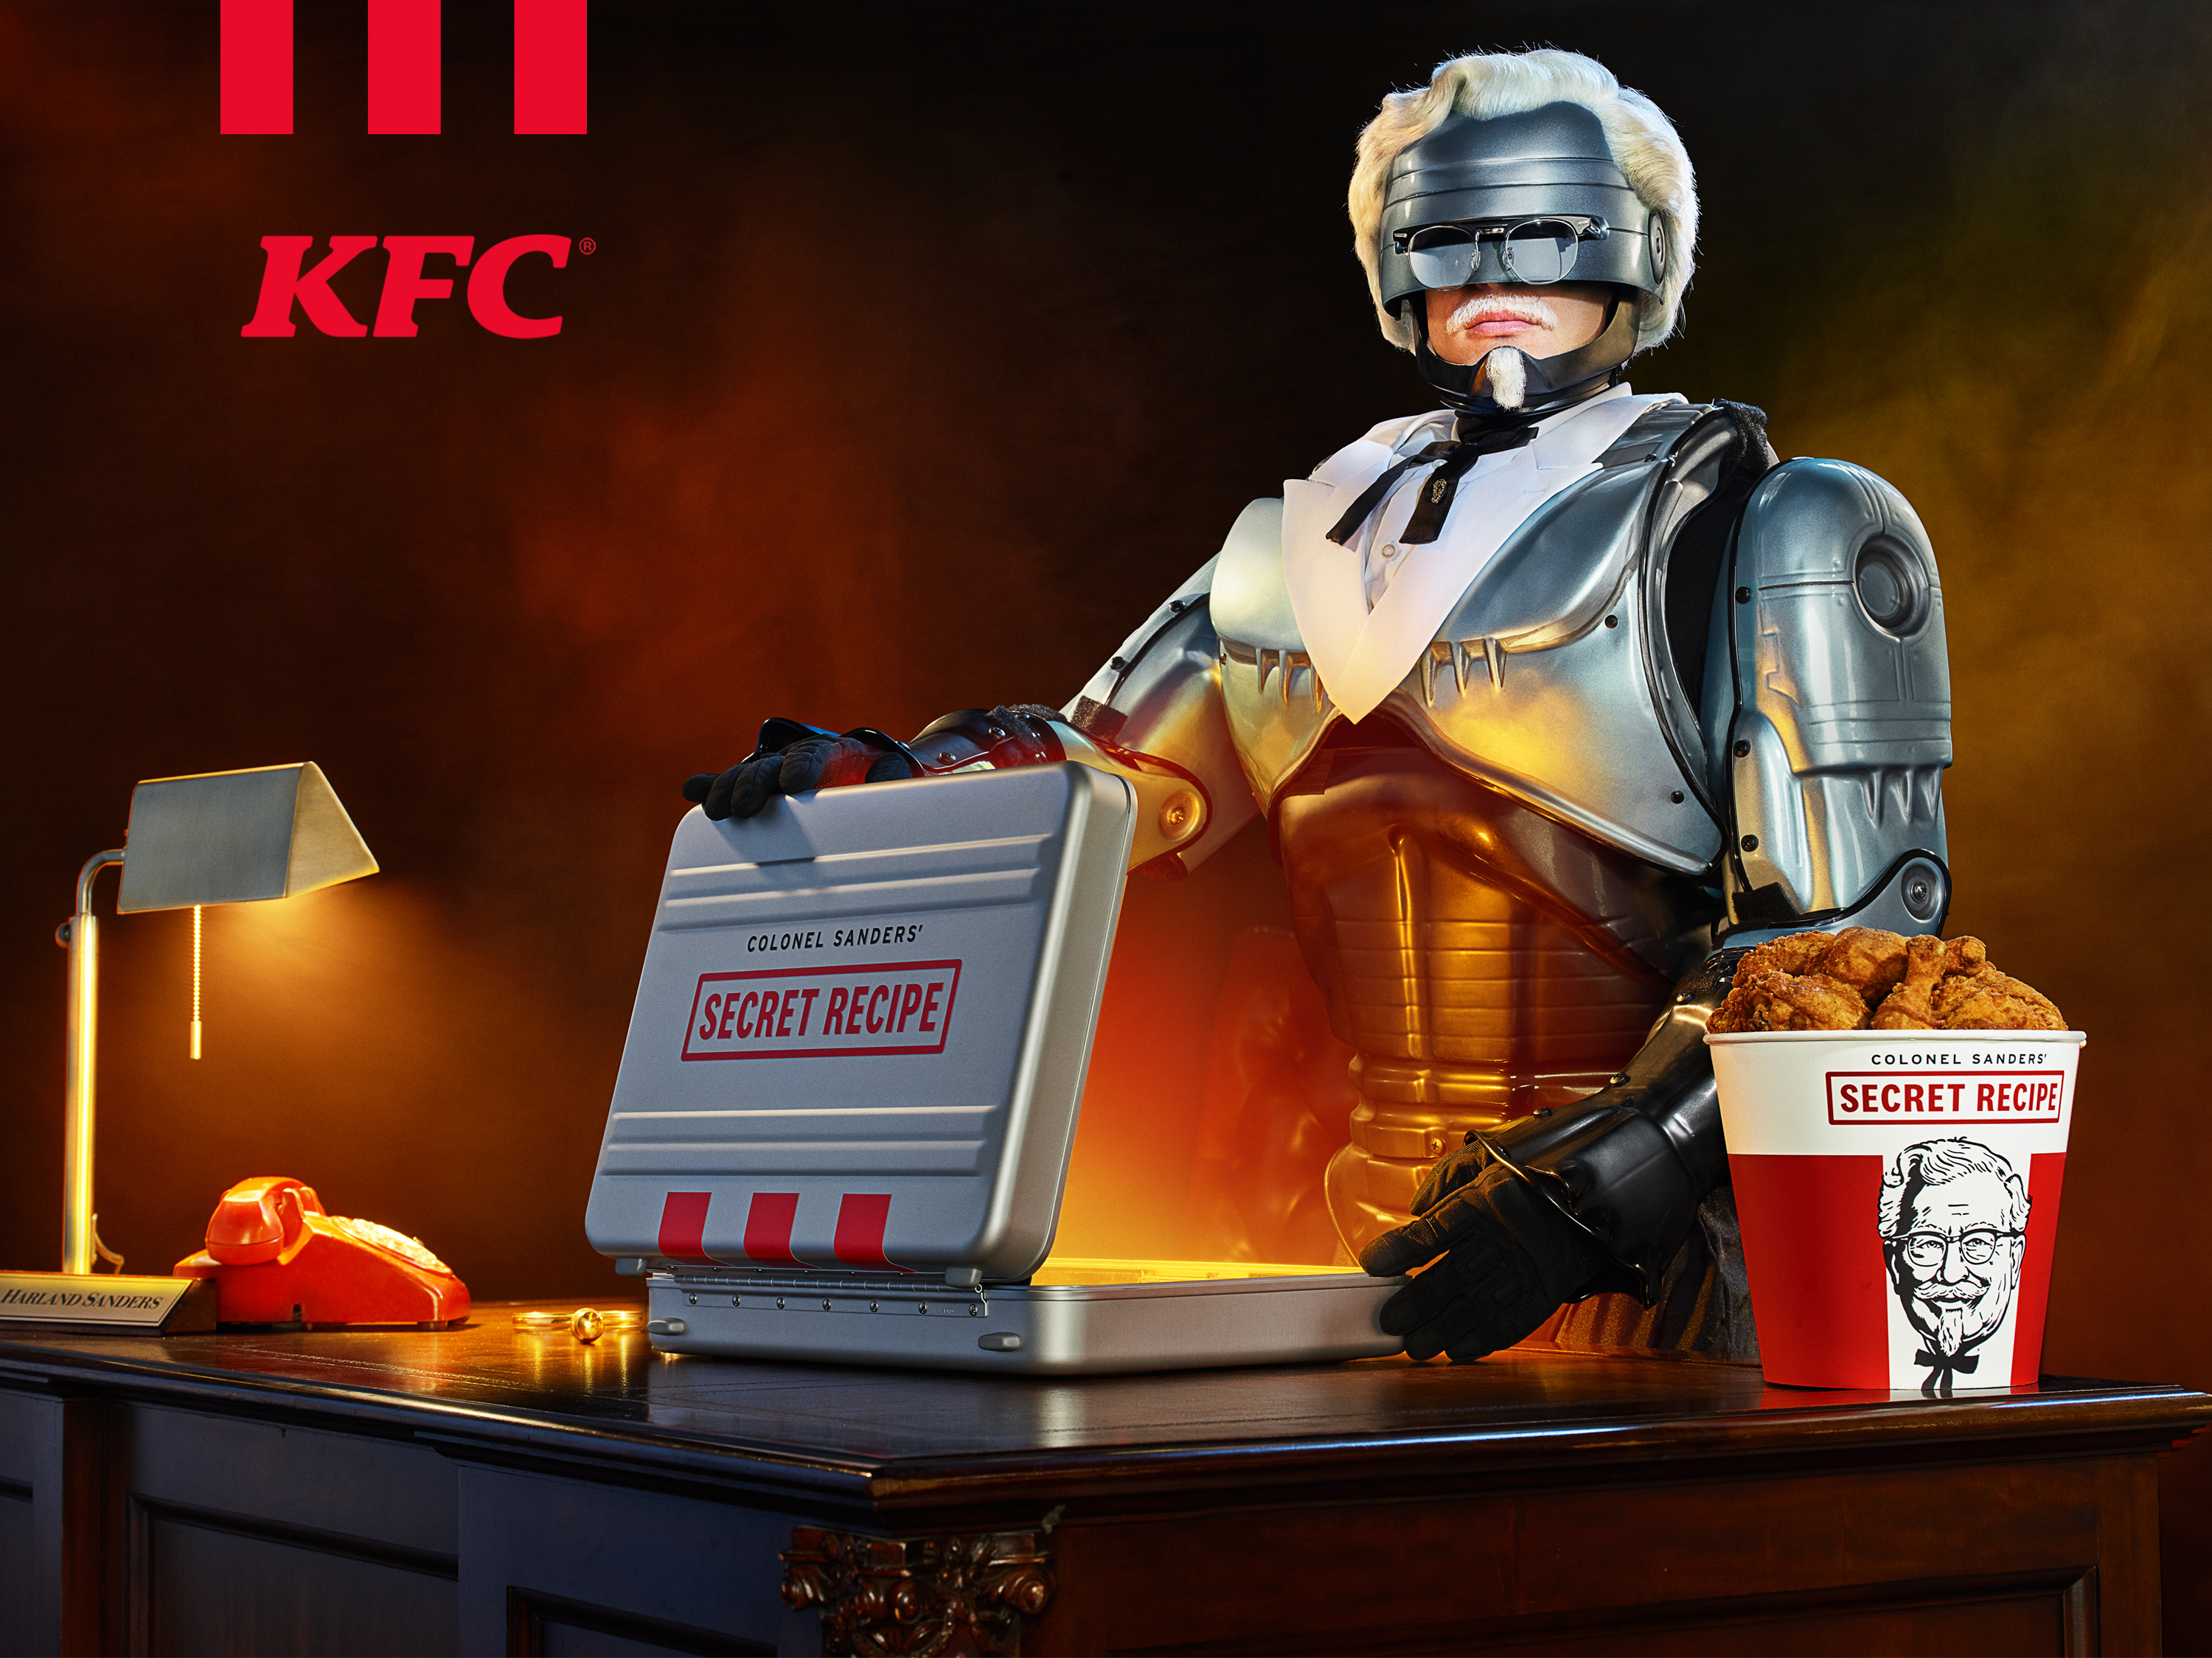 RoboCop Colonel Sanders Is Here to Threaten People With Kentucky Fried Chicken